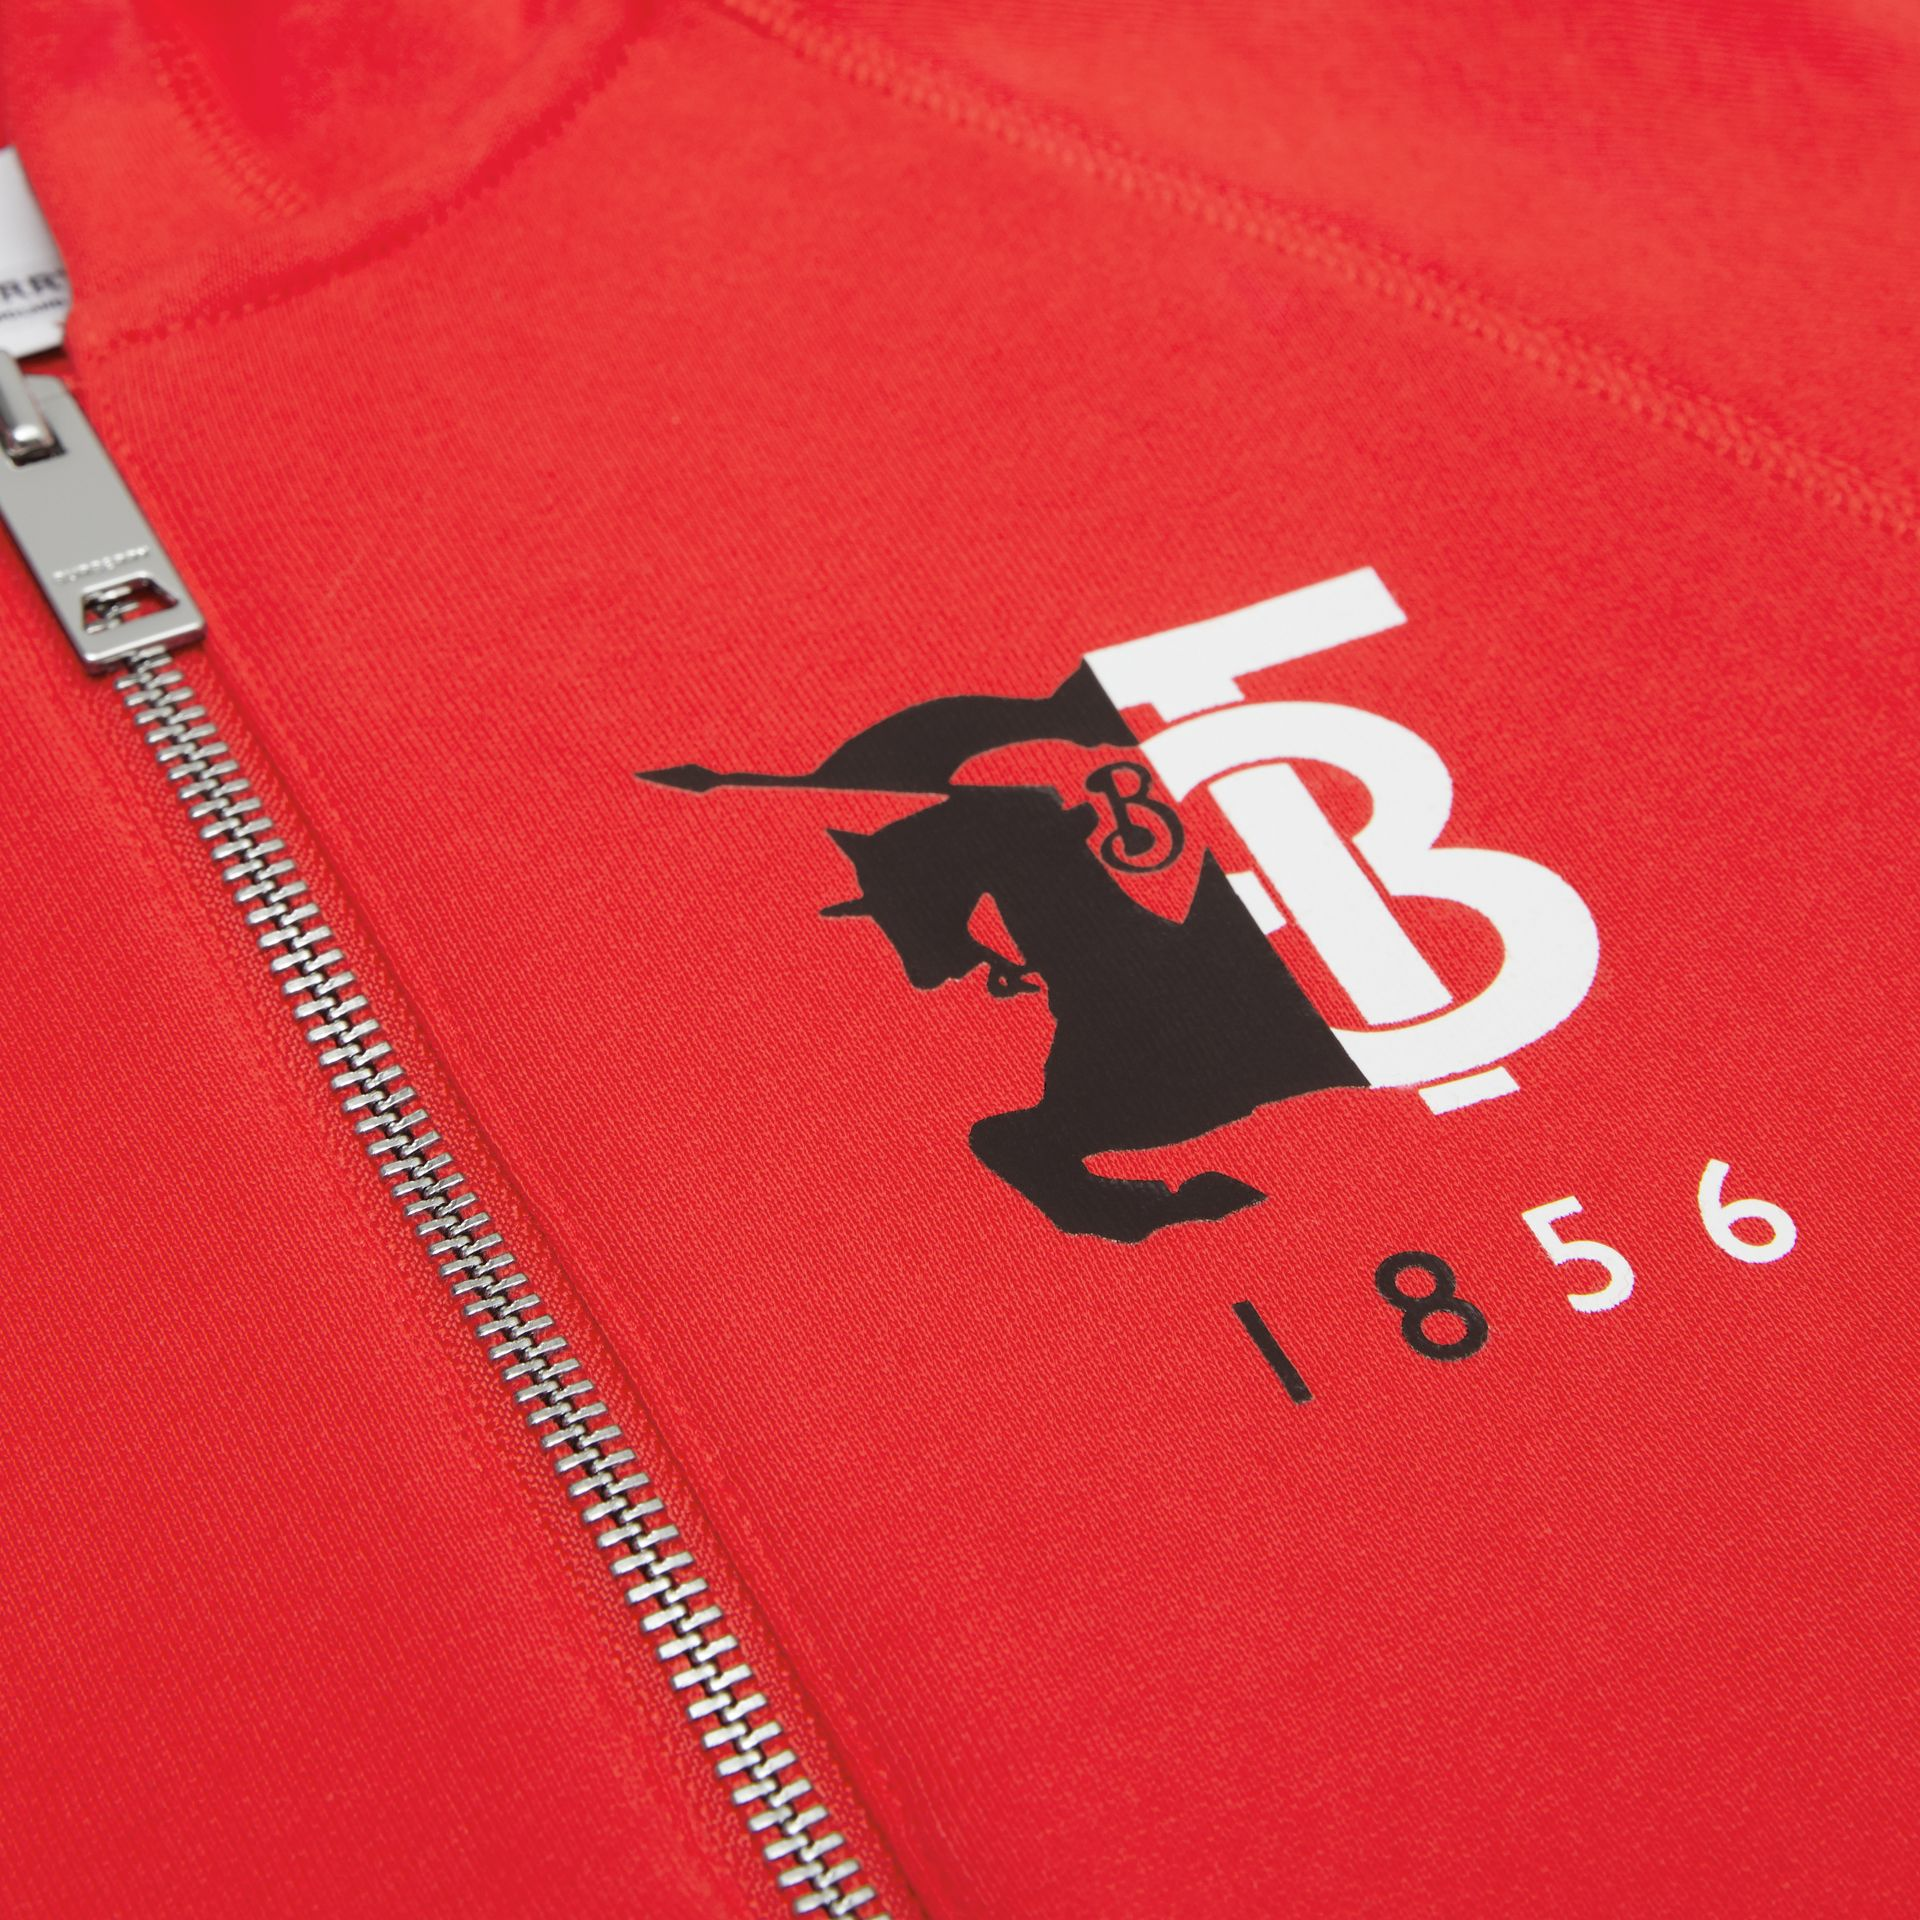 Contrast Logo Graphic Cotton Hooded Top in Bright Red | Burberry - gallery image 1